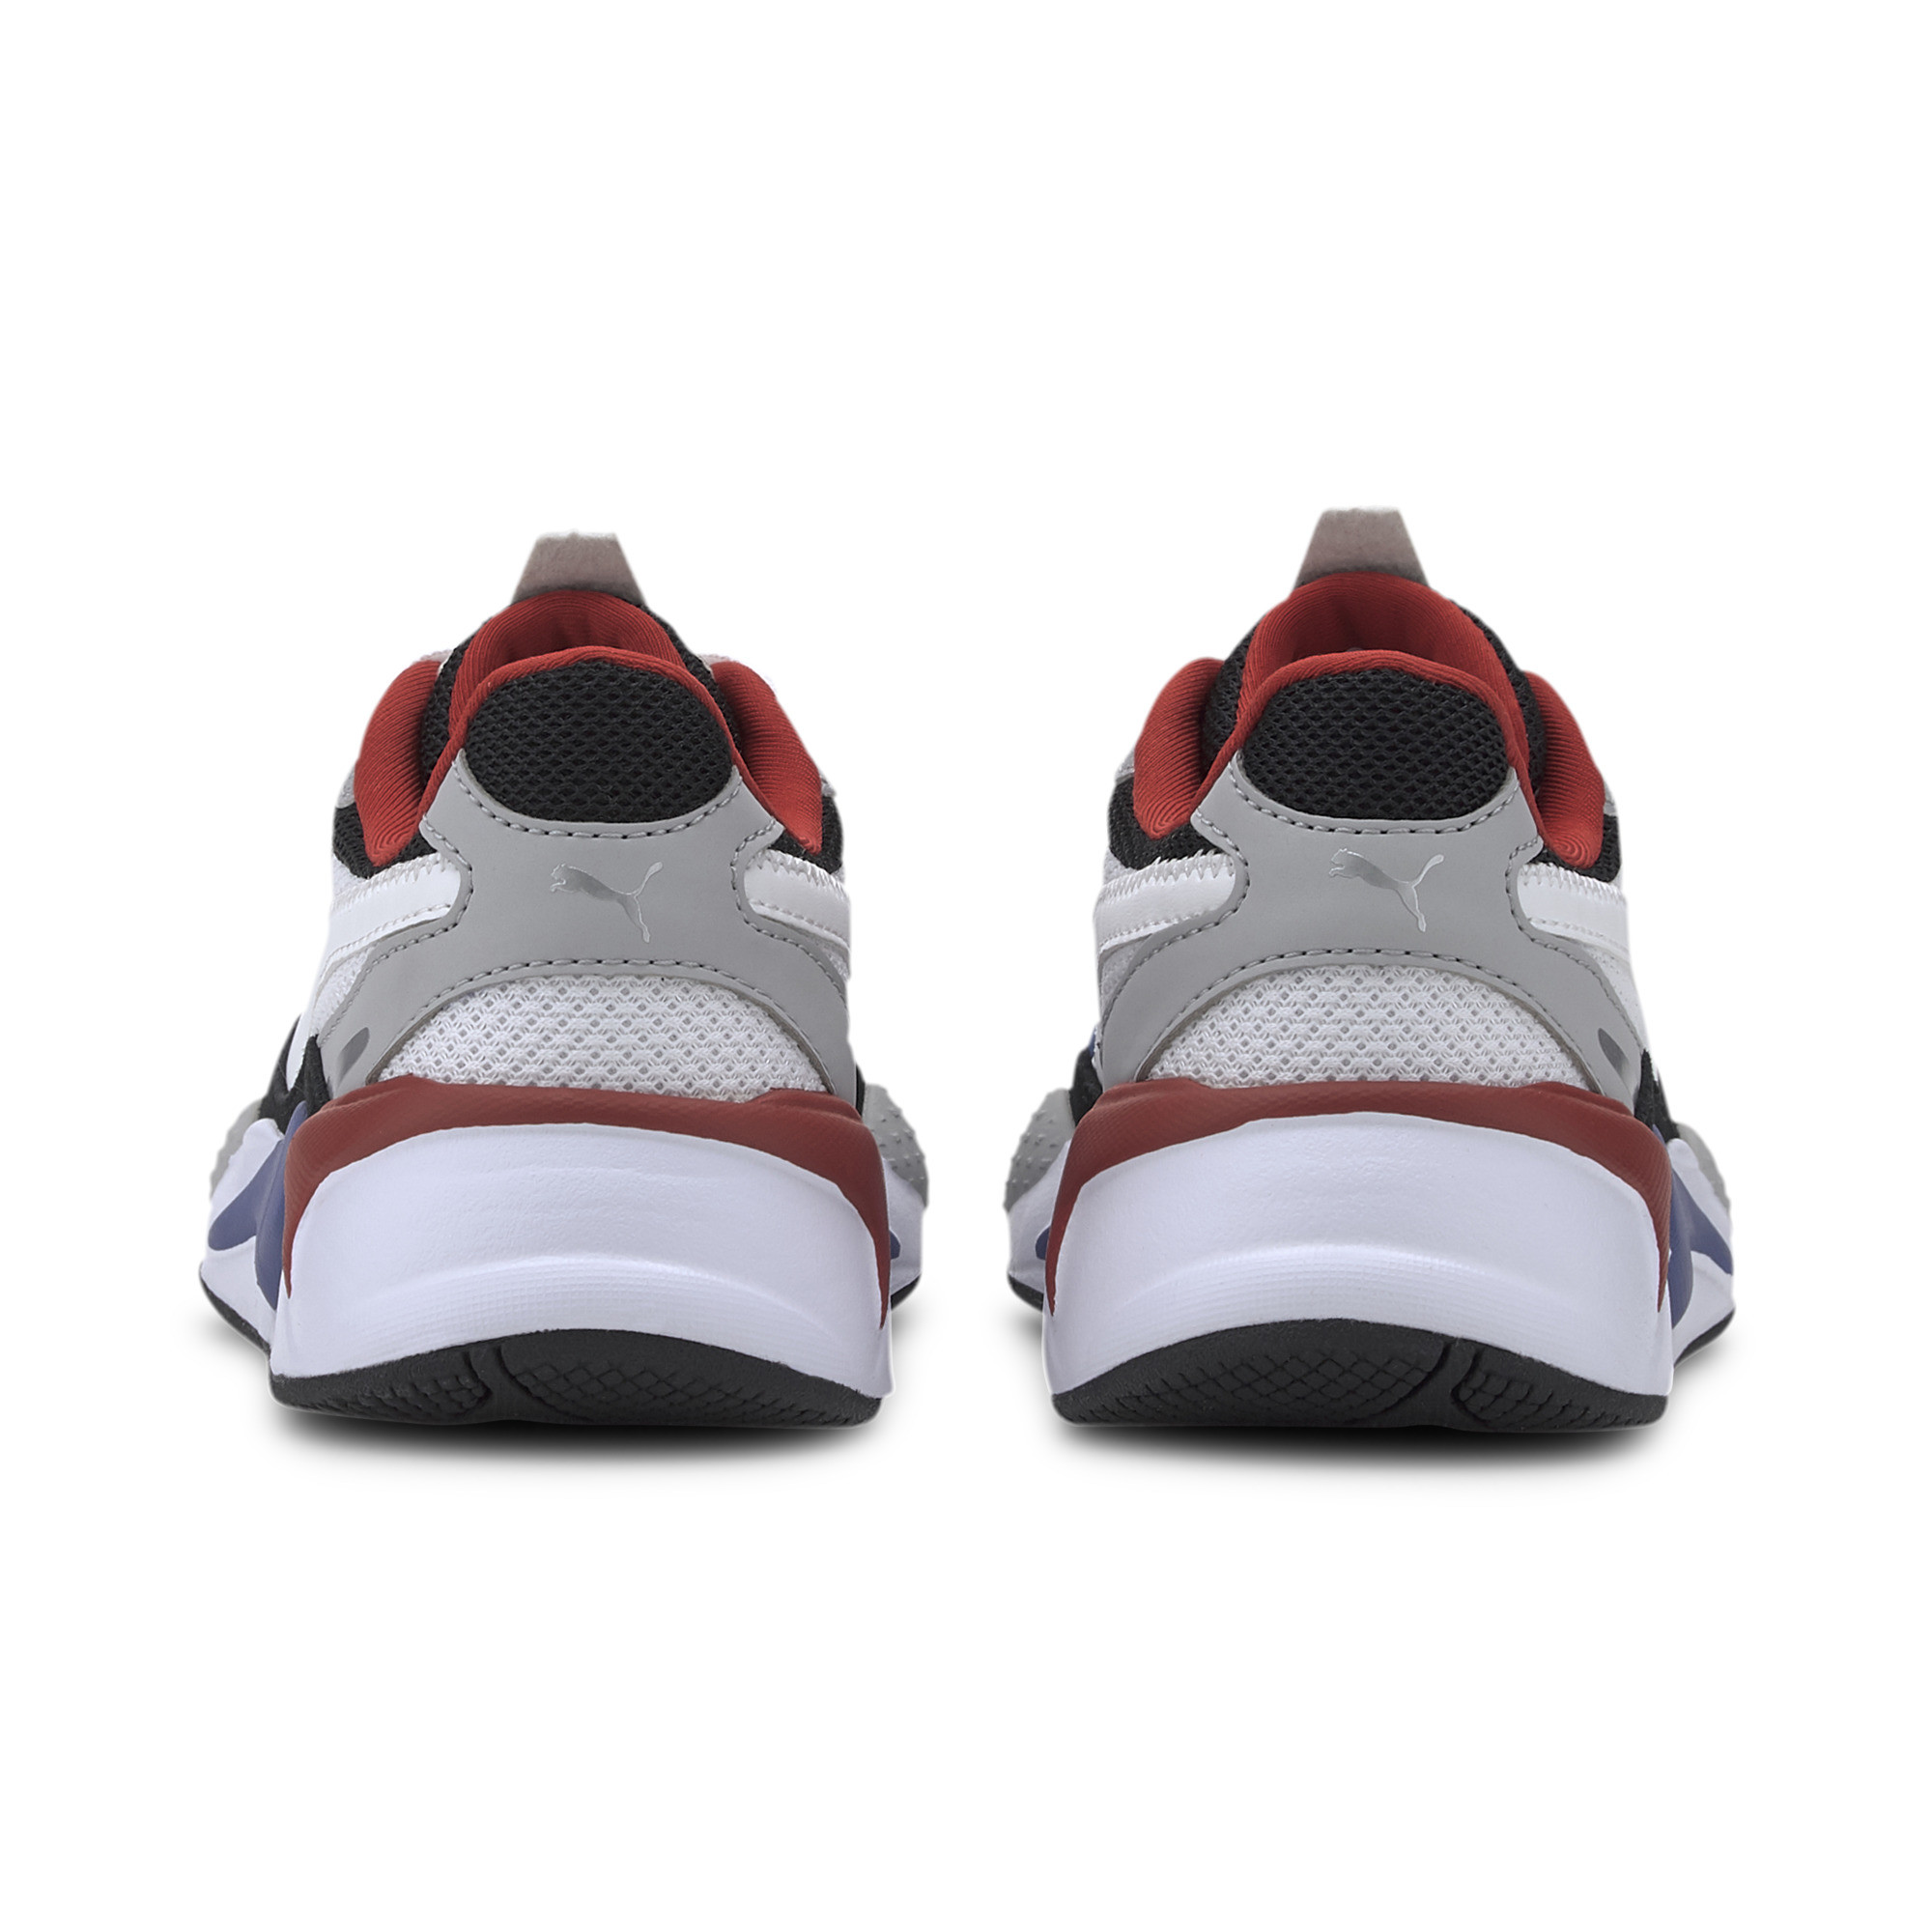 PUMA-RS-X-Puzzle-Little-Kids-039-Shoes-Kids-Shoe-Kids thumbnail 6